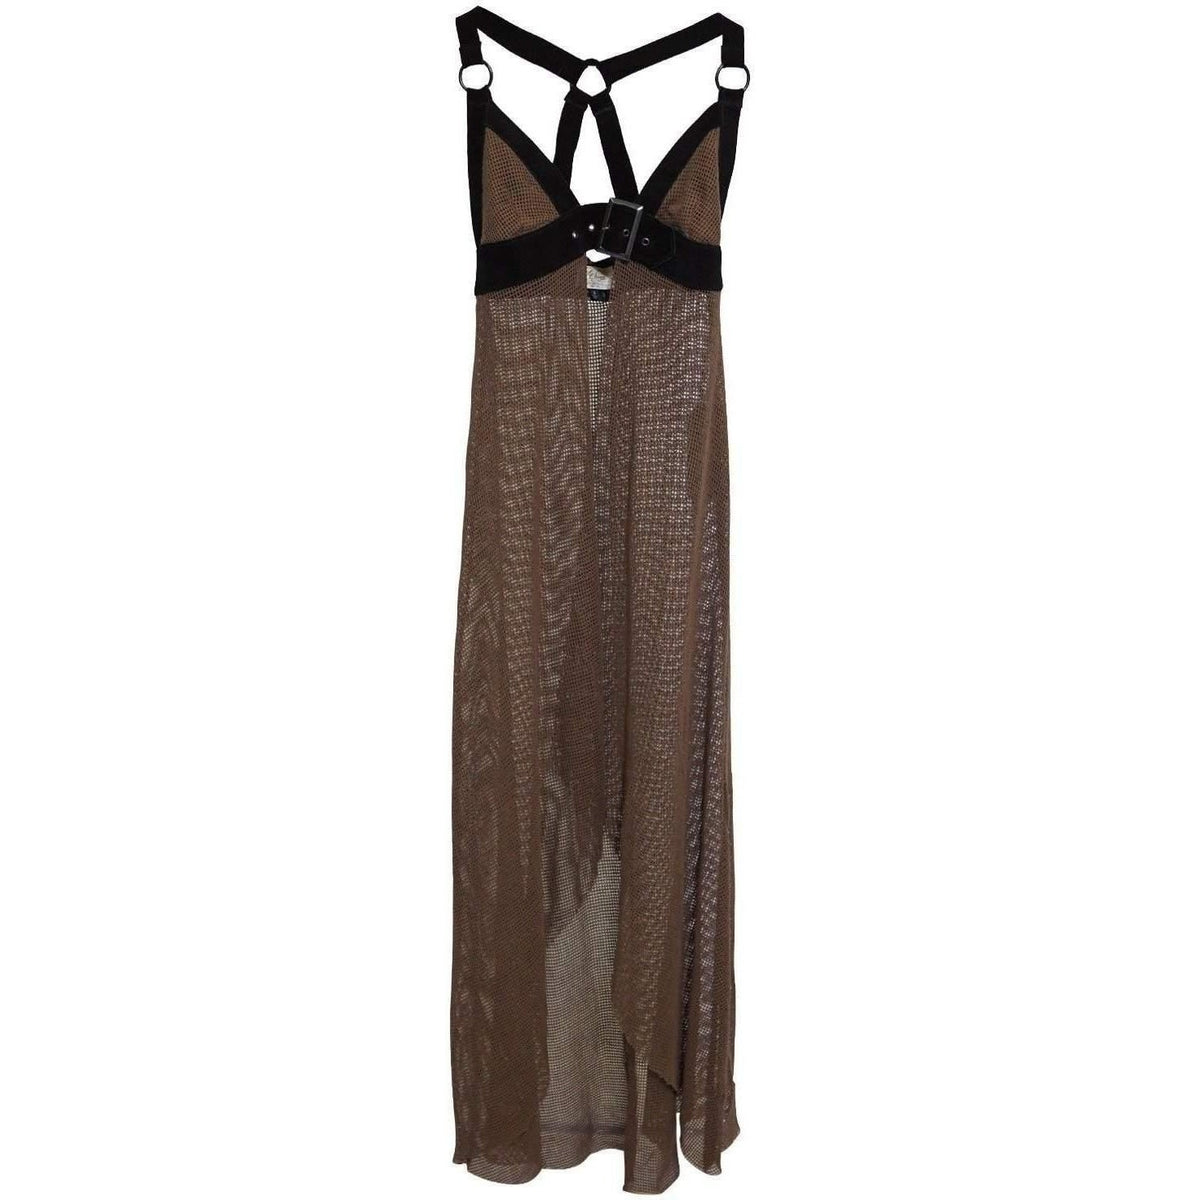 LIP SERVICE Neoburner Maxi High Low Mesh Dress Cover W/ Leather Straps!